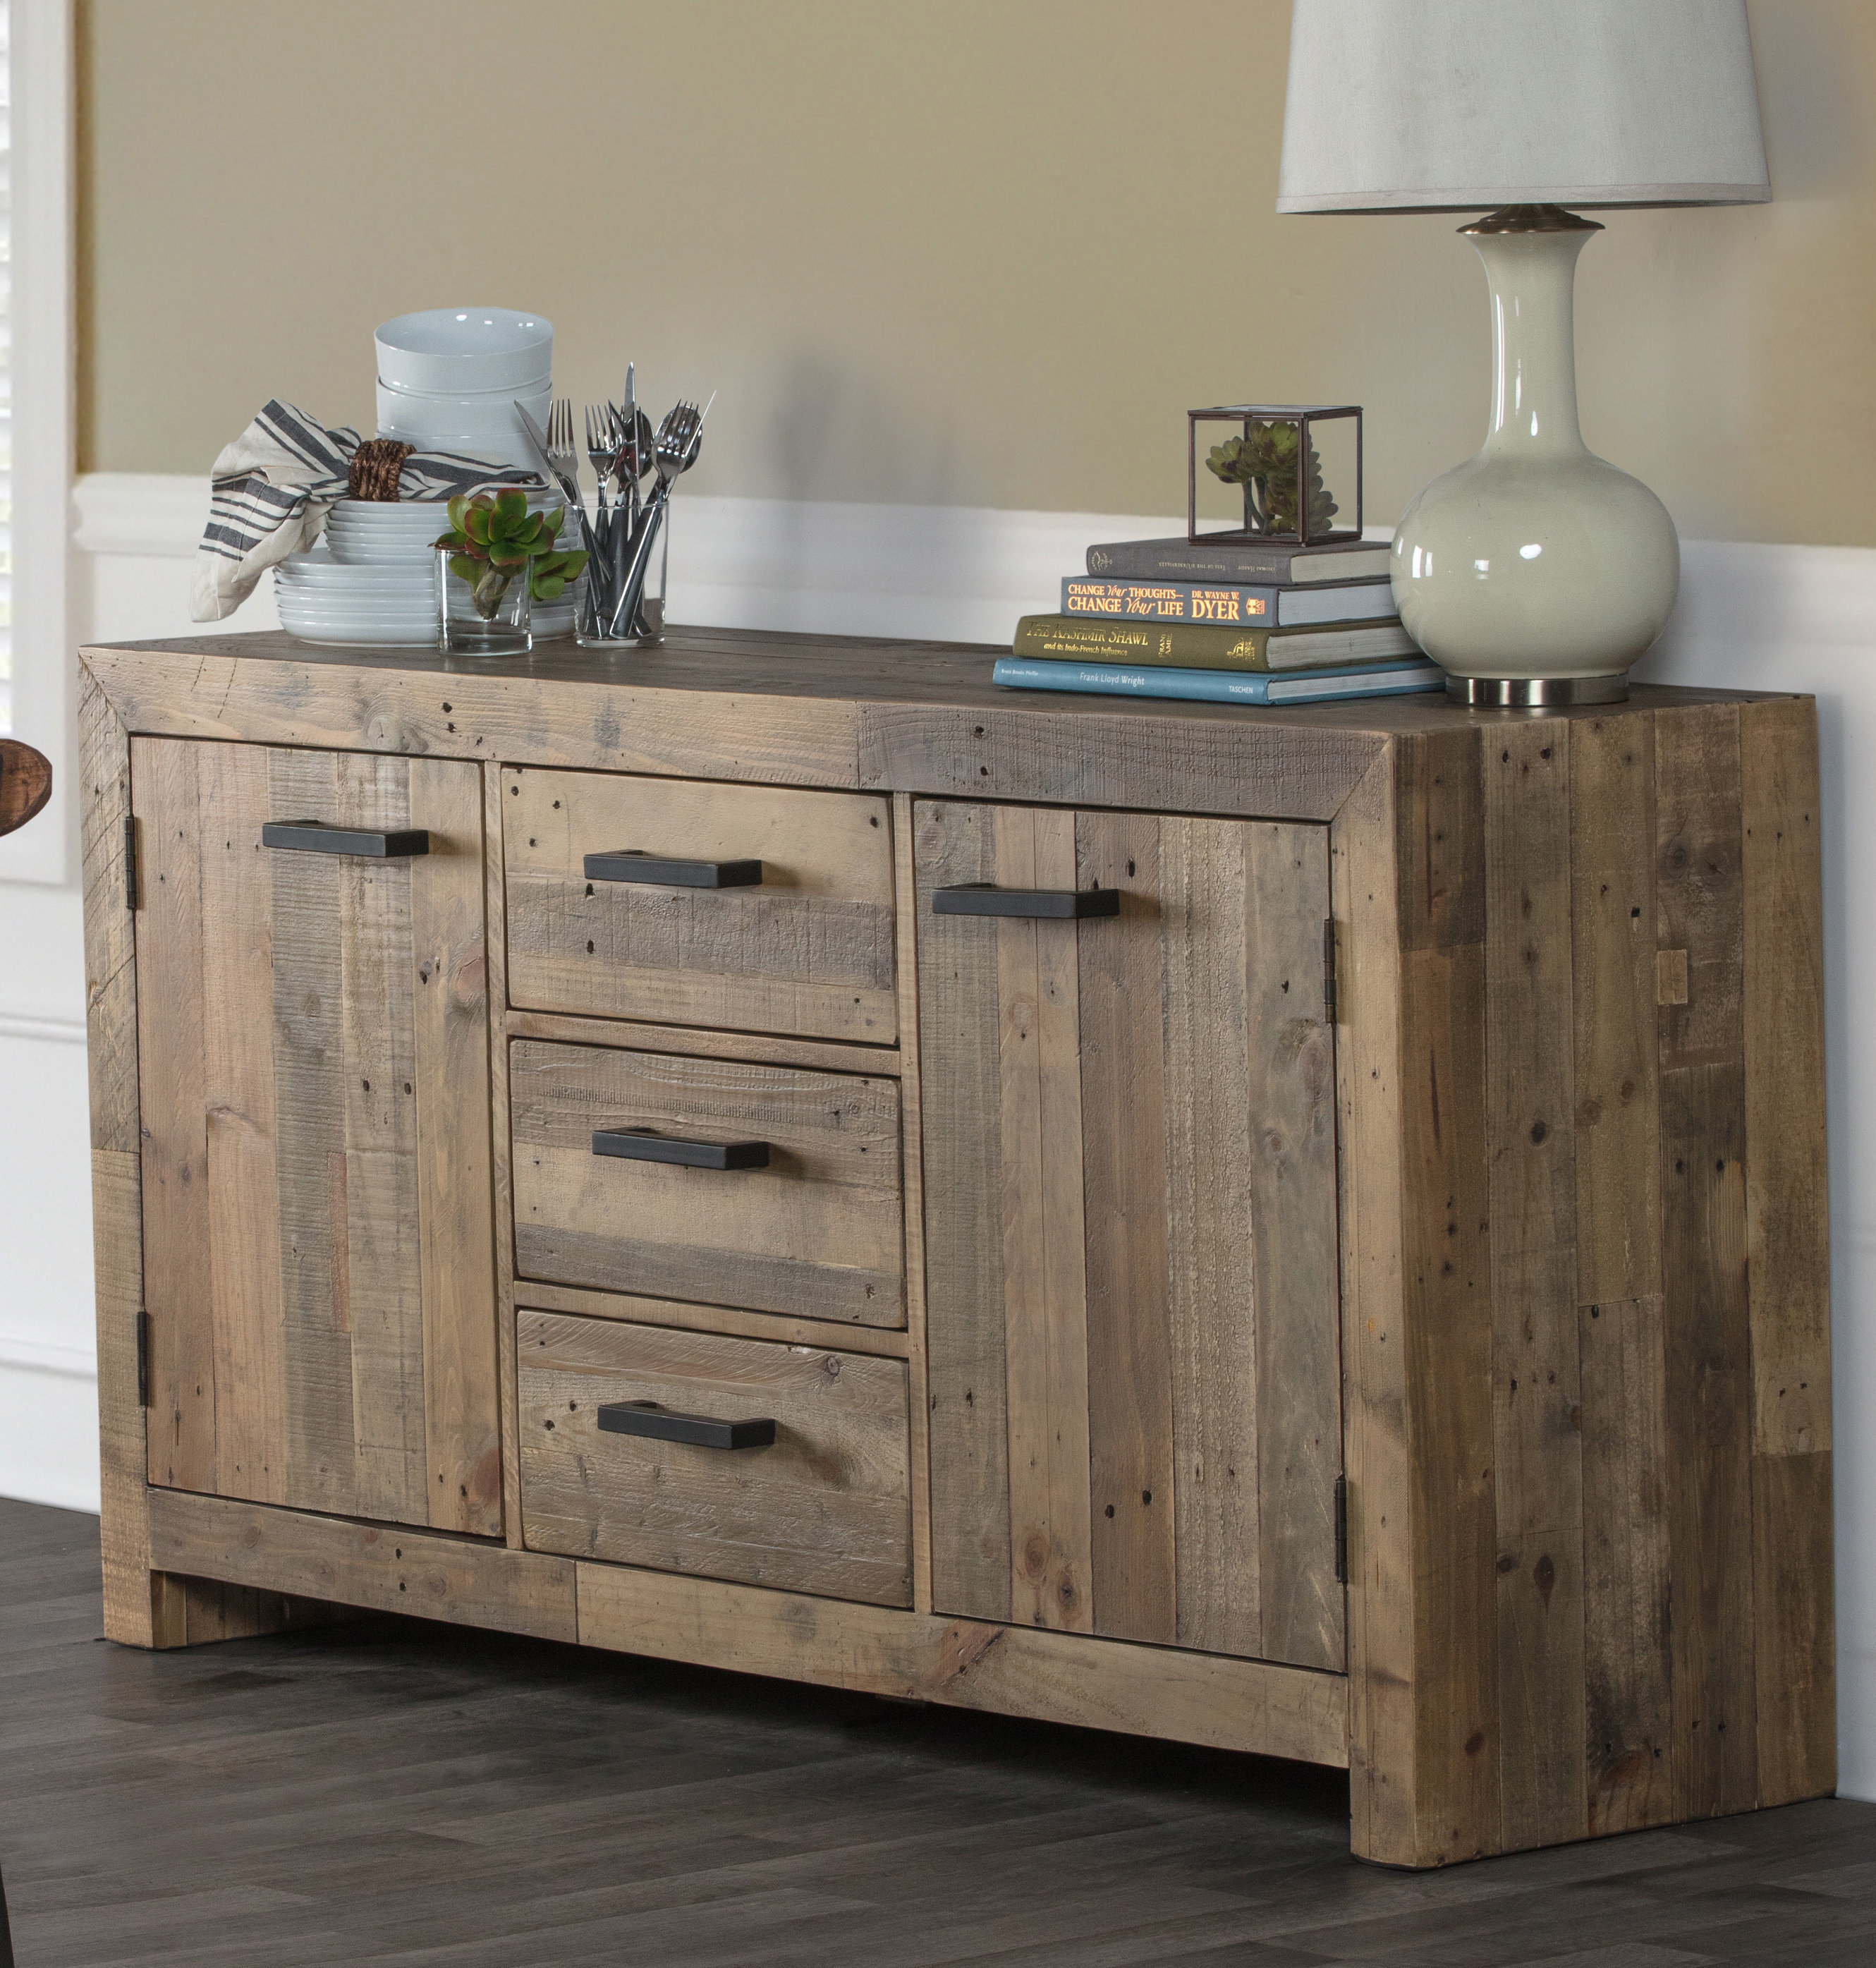 sideboard cabinet loon peak needham sideboard u0026 reviews | wayfair HQHQLND